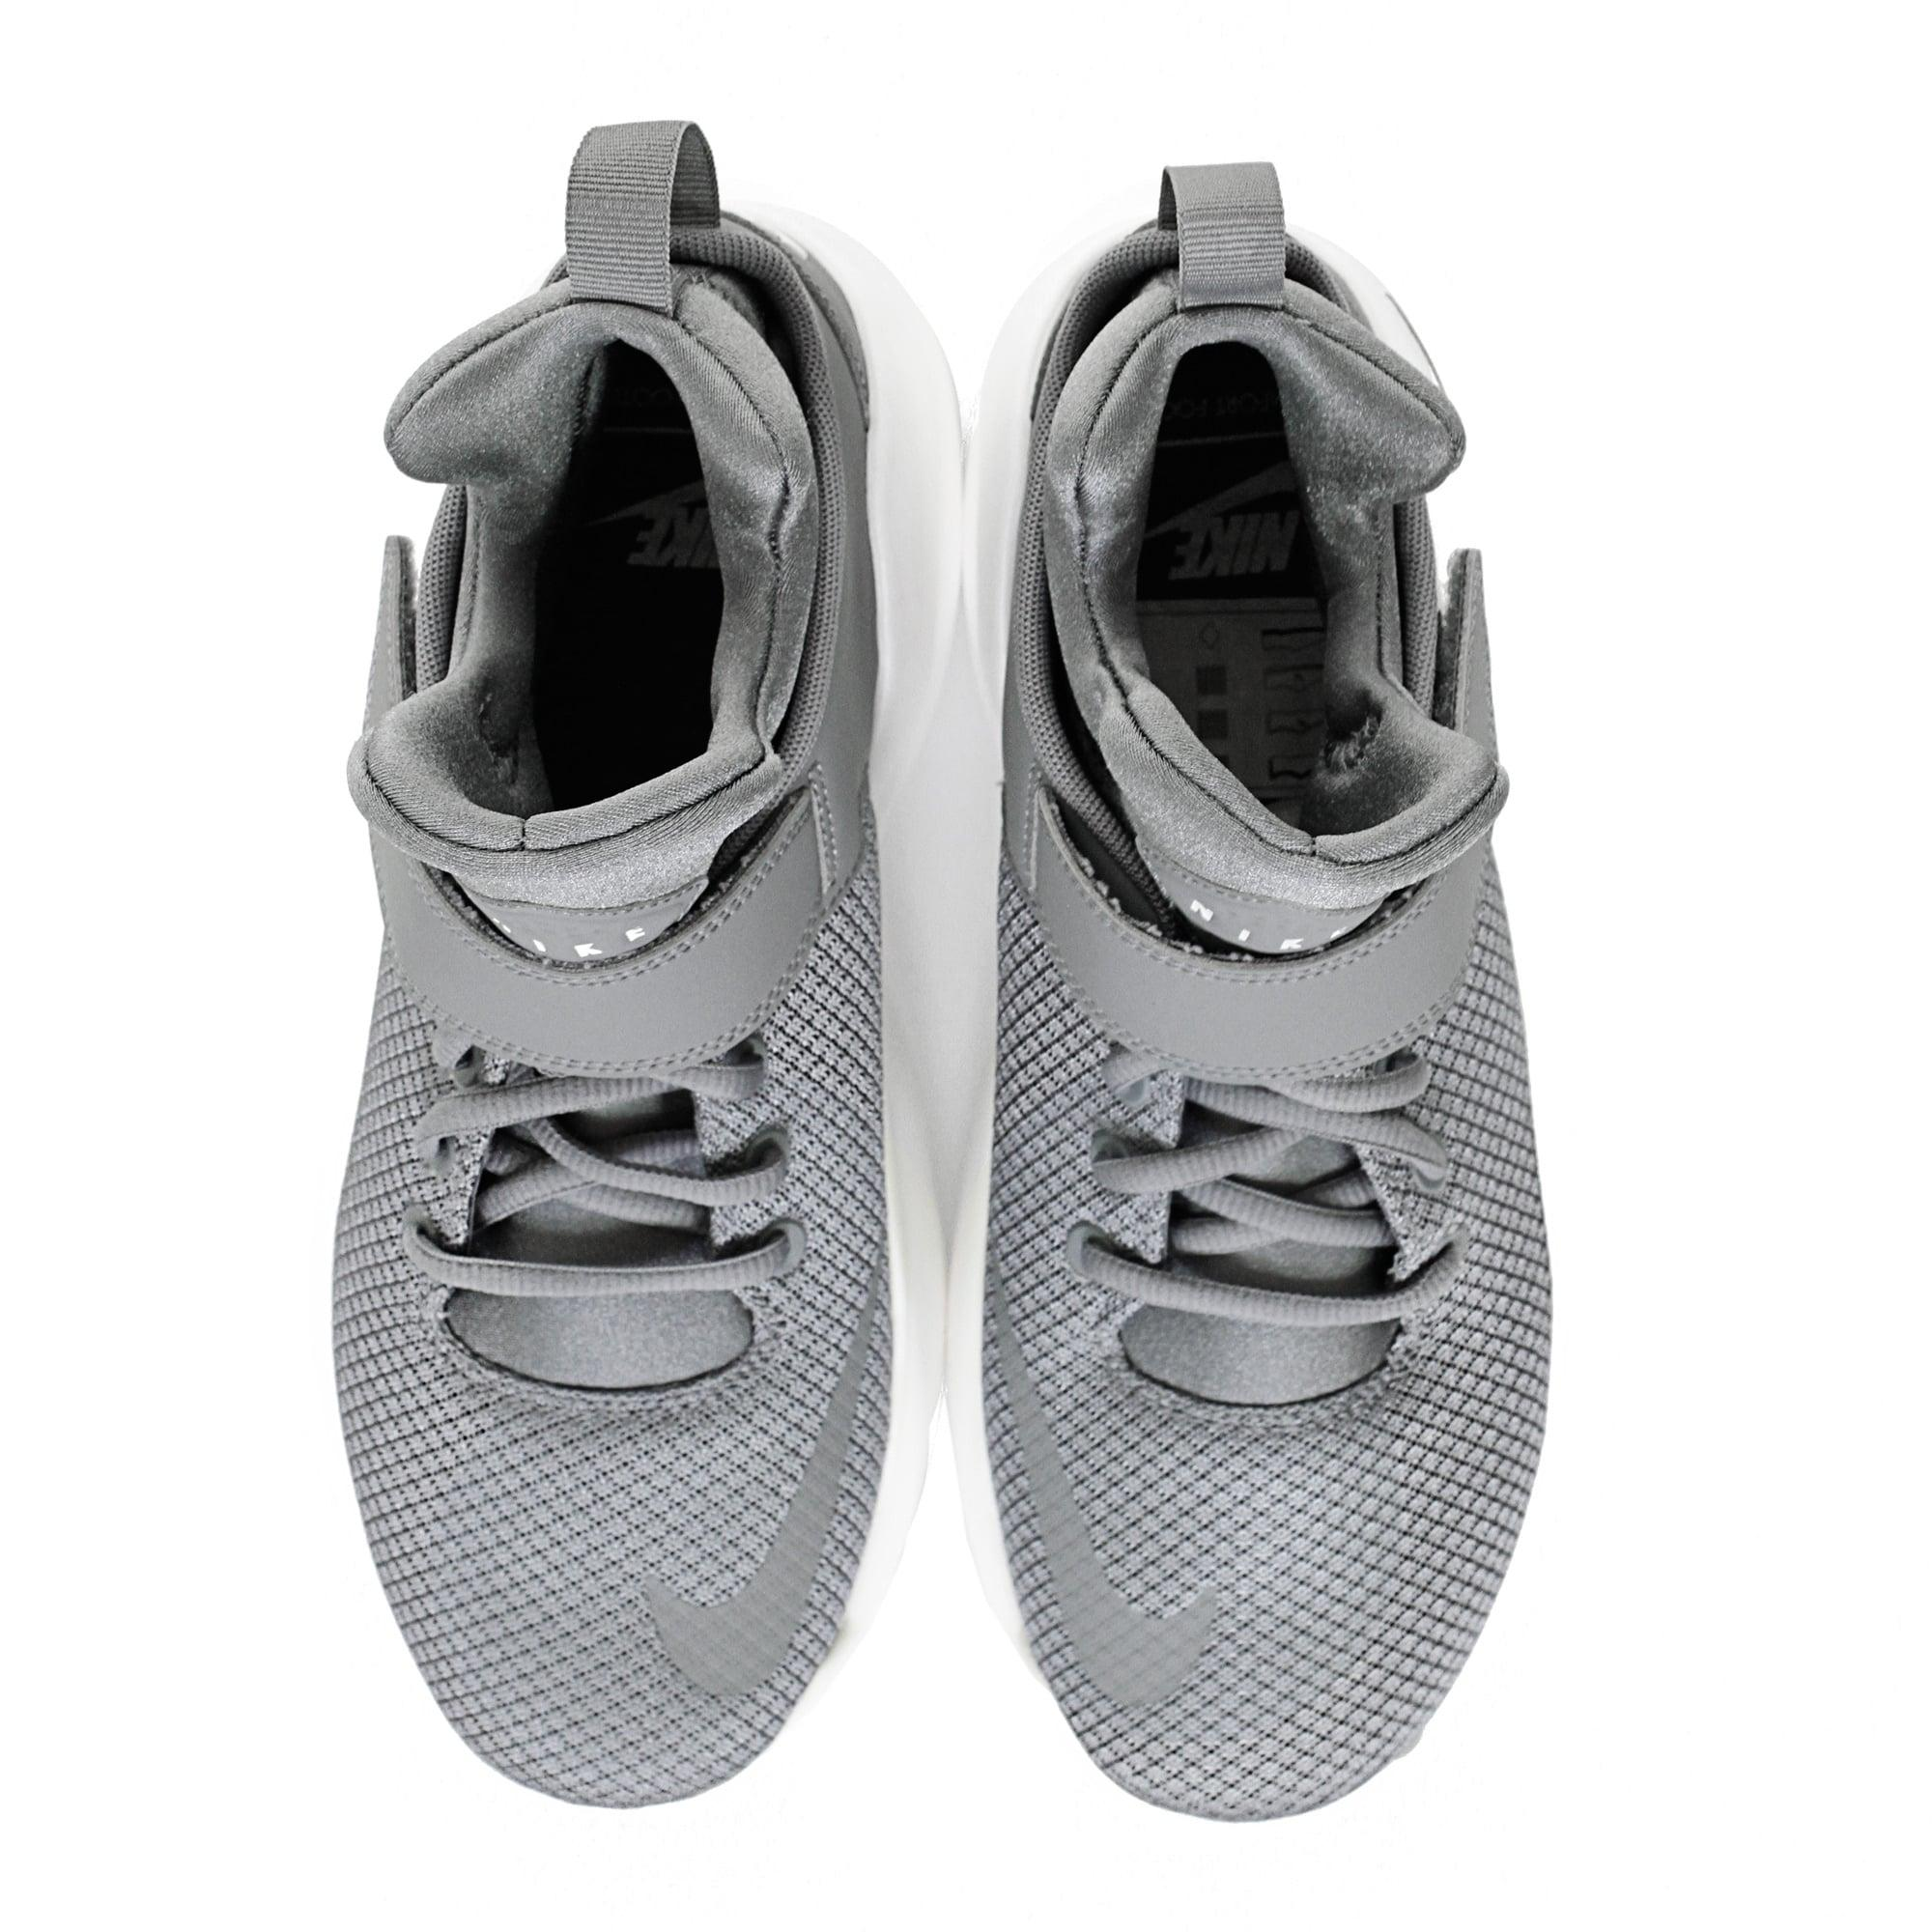 2c7297a7e774 ... low price lyst nike kwazi cool grey sail shoe 844839 in gray for men  4b807 4efca